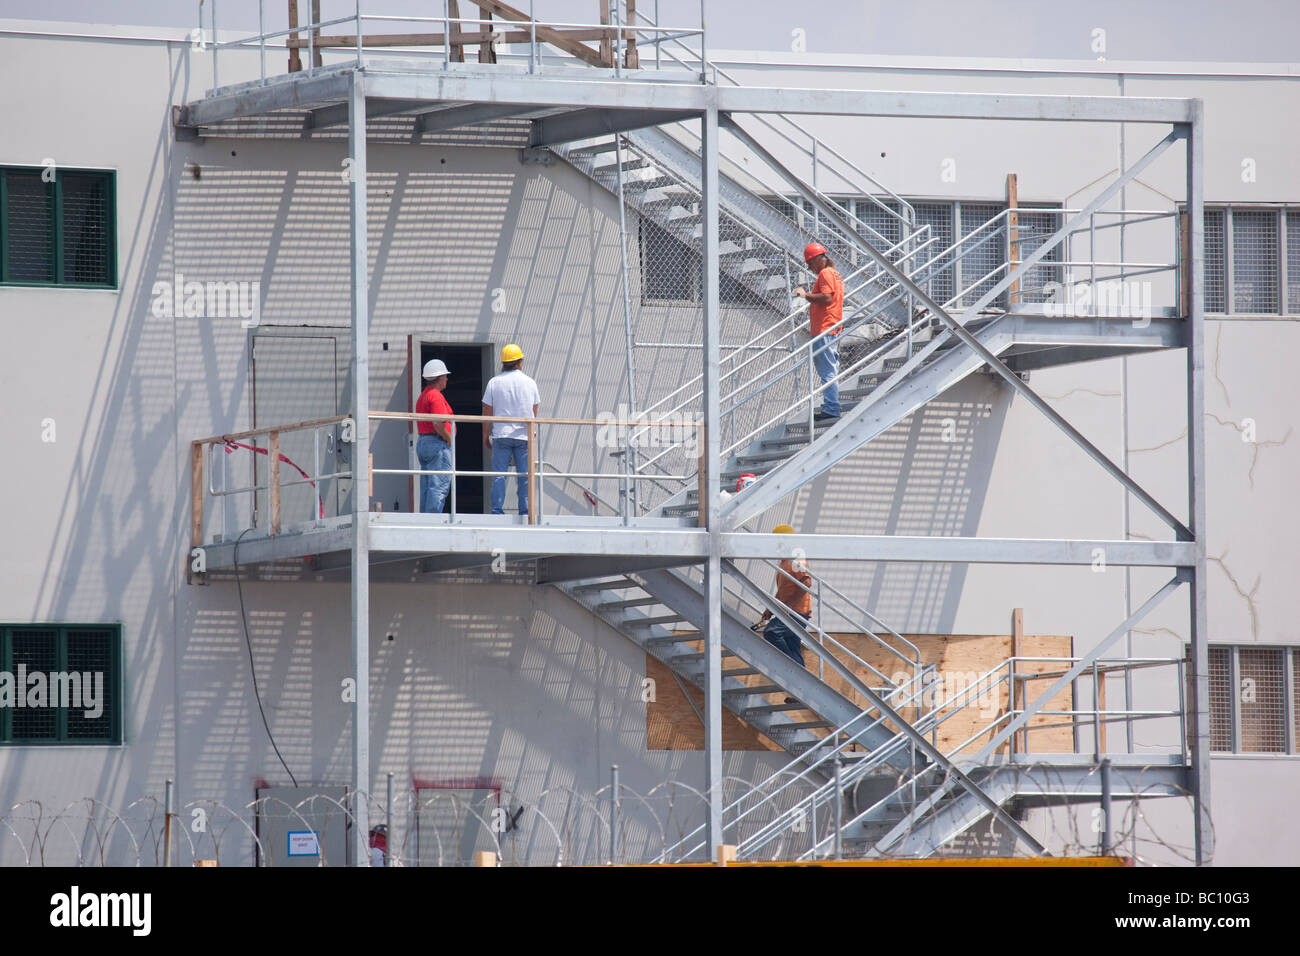 Construction workers in hardhats at a construction site - Stock Image